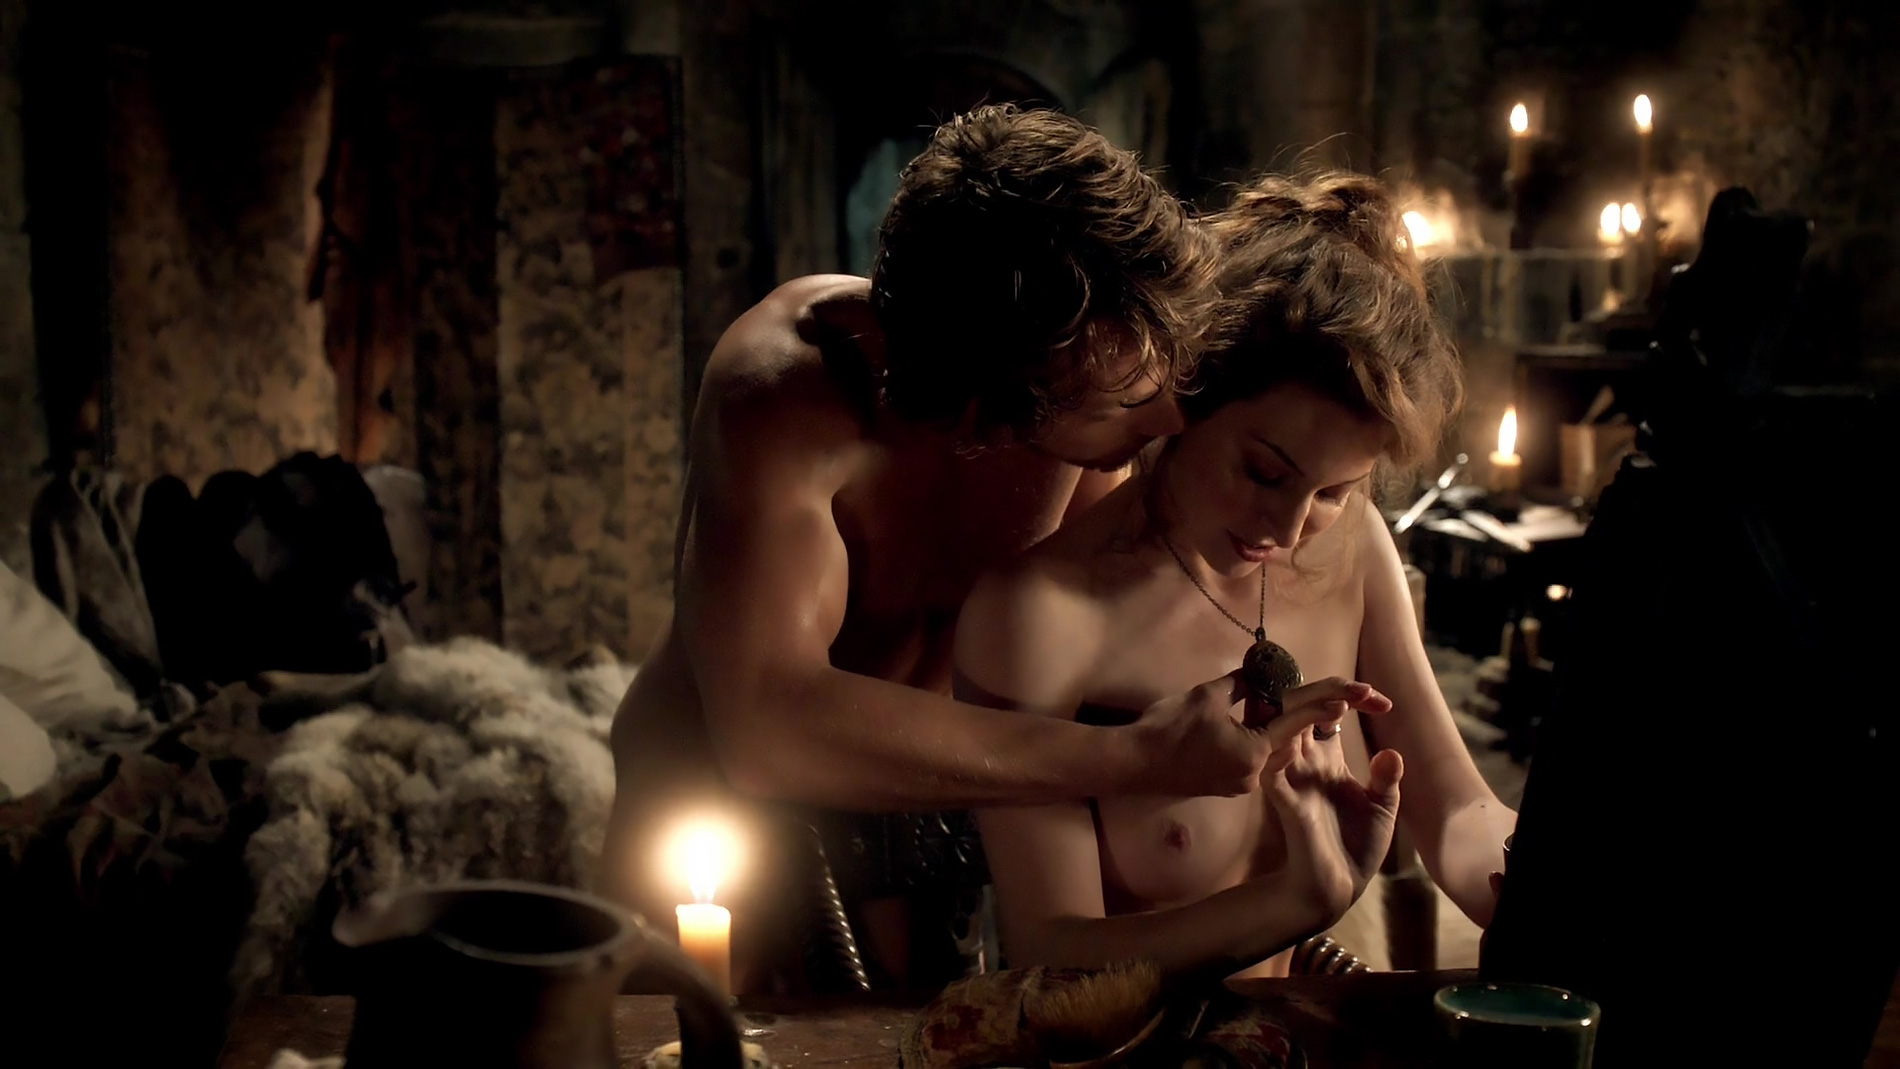 game-of-thrones-sexiest-scenes-lightskined-woman-wet-pussy